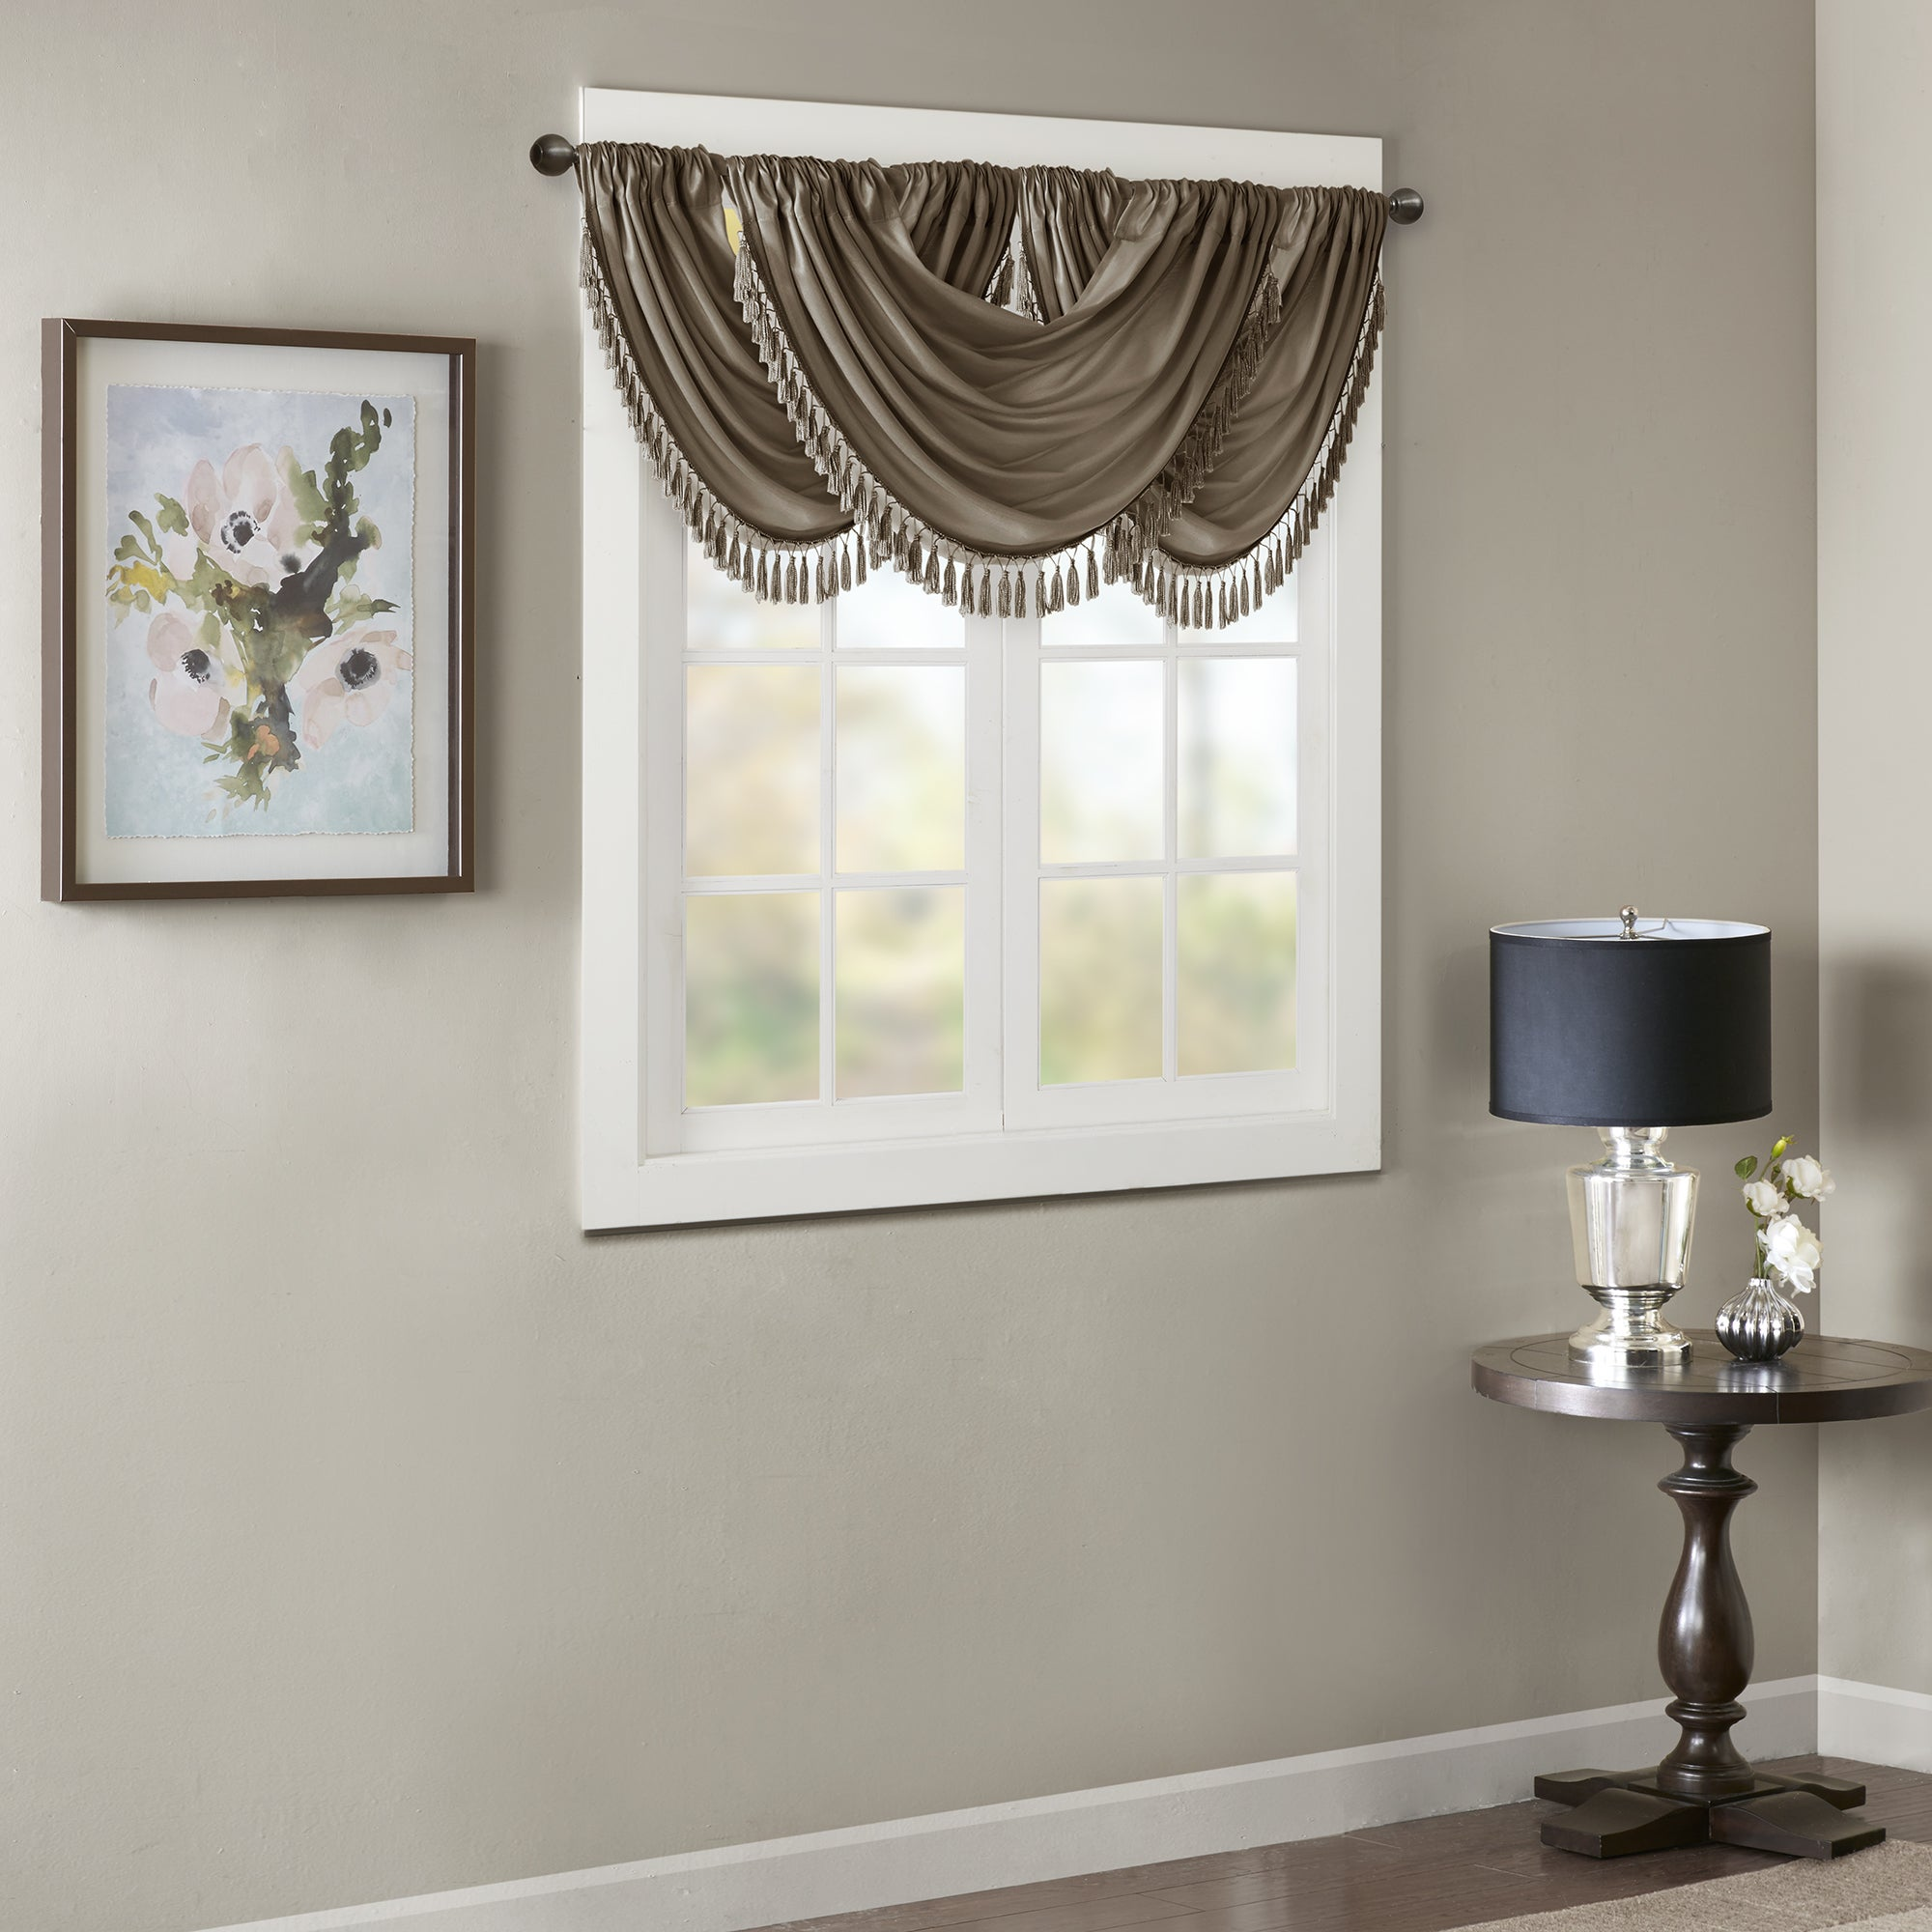 of room beauty the ornamentation as for dressing curtains valances coverings window an windows valance living